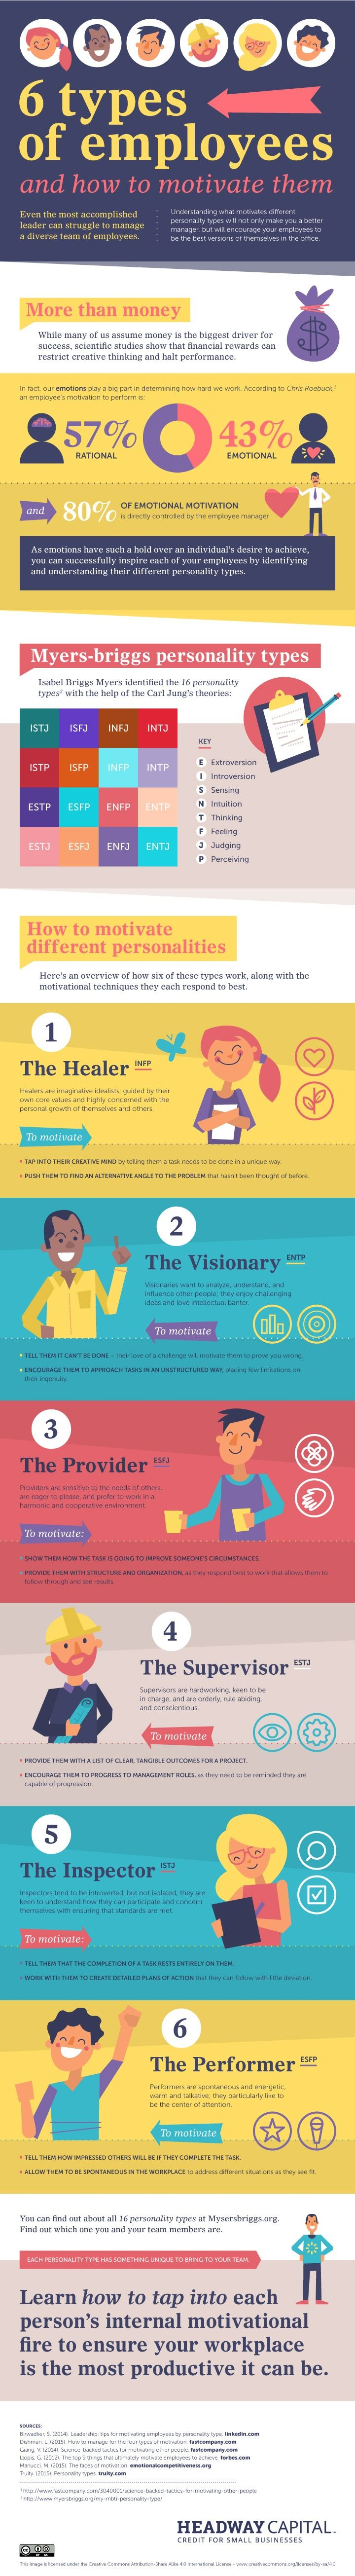 best ideas about employee motivation business managing a team of employees different personalities can be tough check out our latest infographic to explore how you can effectively motivate them